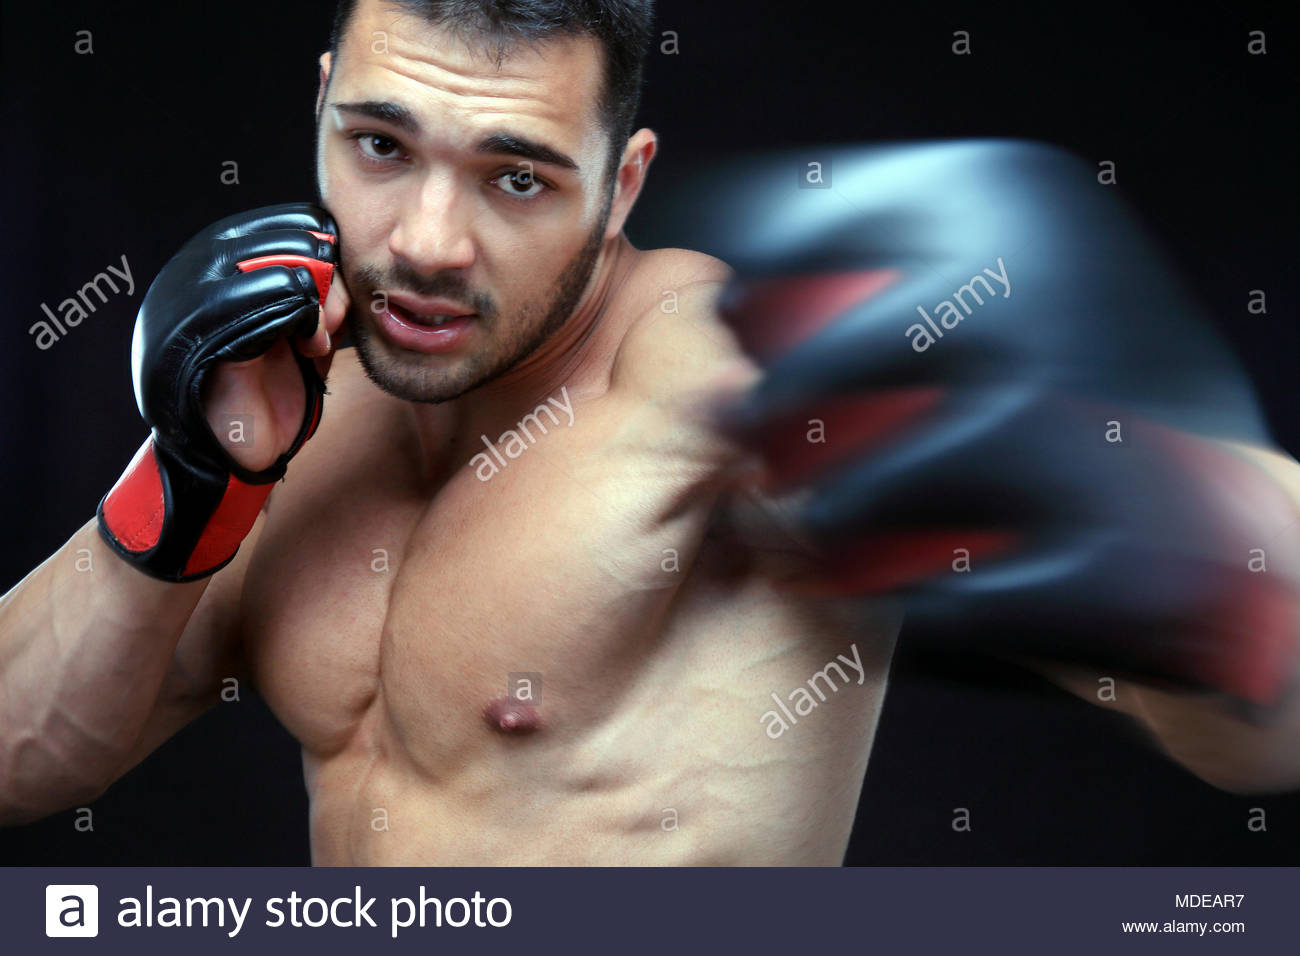 Mma Gloves Stock Photos Amp Mma Gloves Stock Images Alamy